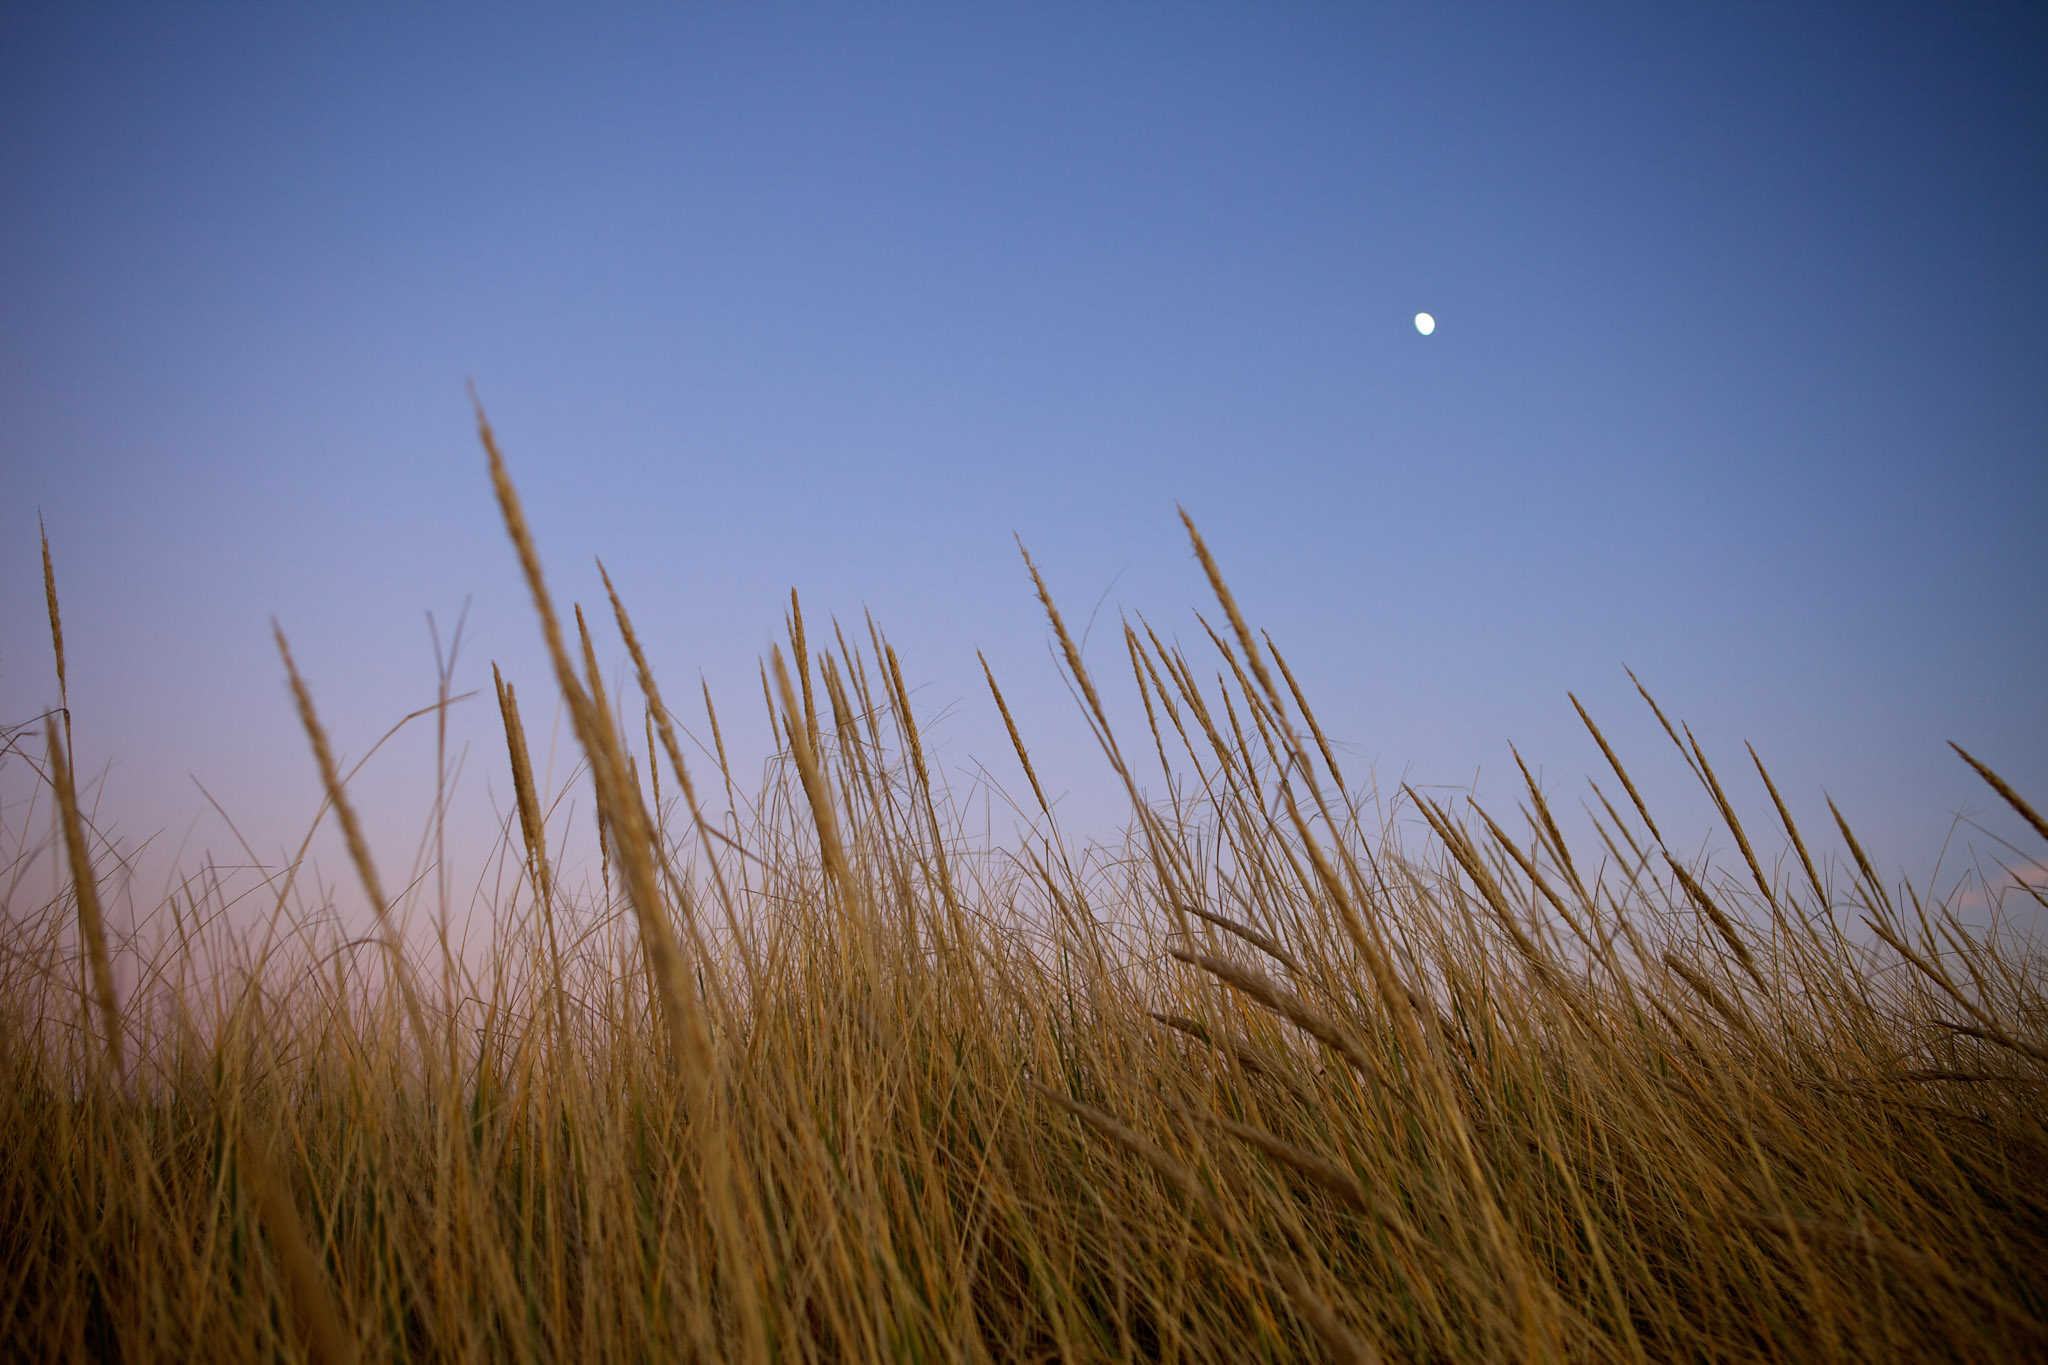 Moonlit dunes in Seaside